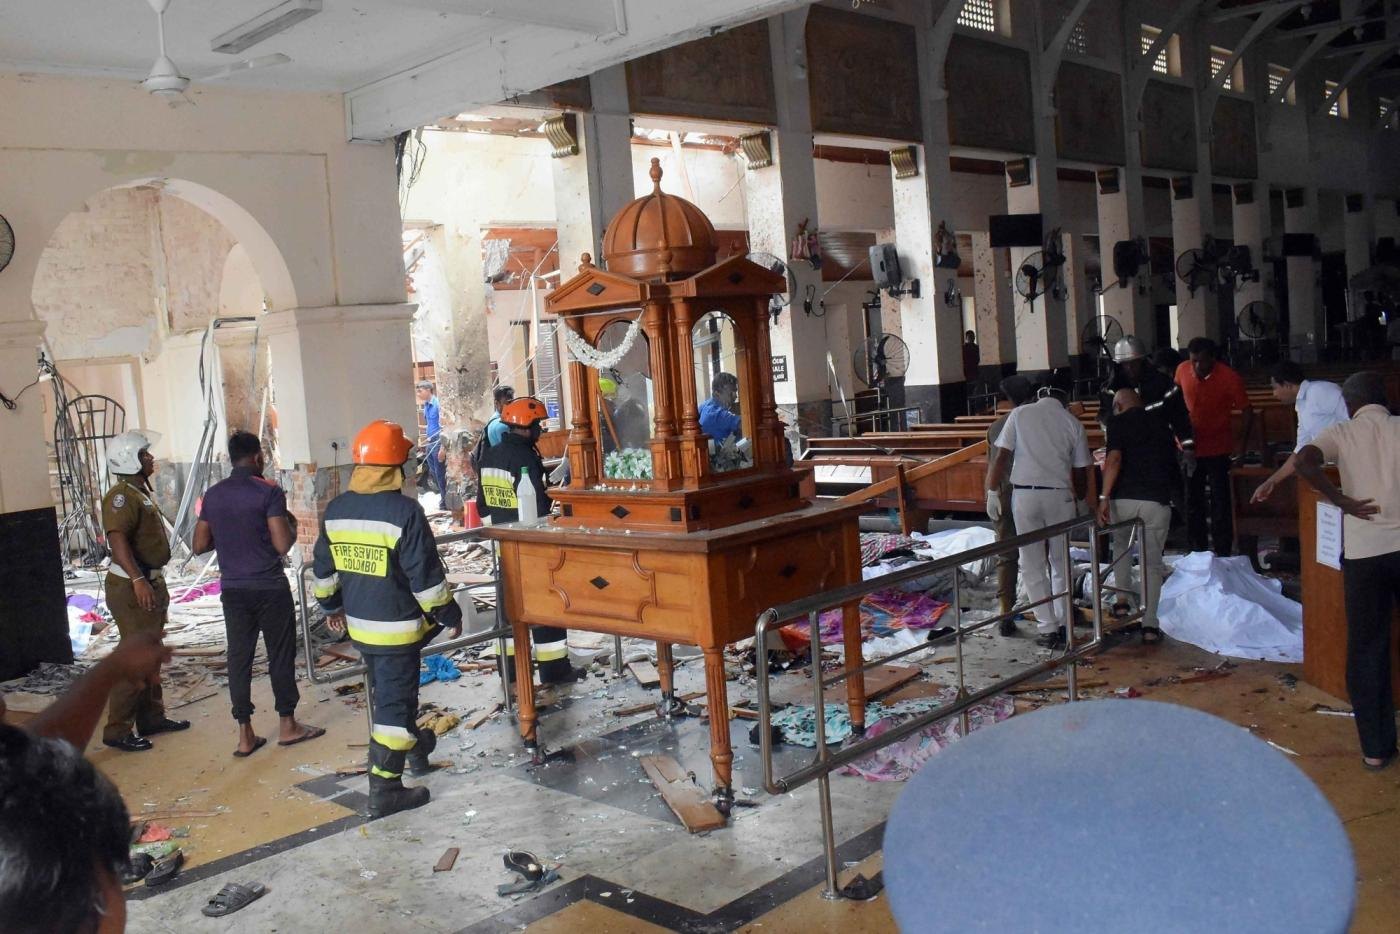 Colombo, April 22, 2019 (Xinhua) -- People work at a blast scene at St. Anthony's Church in Kochchikade in Colombo, Sri Lanka, April 21, 2019. The death toll from the multiple blasts that ripped through Sri Lanka on Sunday rose to 228 while 450 others were injured, local media quoting hospital sources said. (Xinhua/Wang Shen/IANS) by .